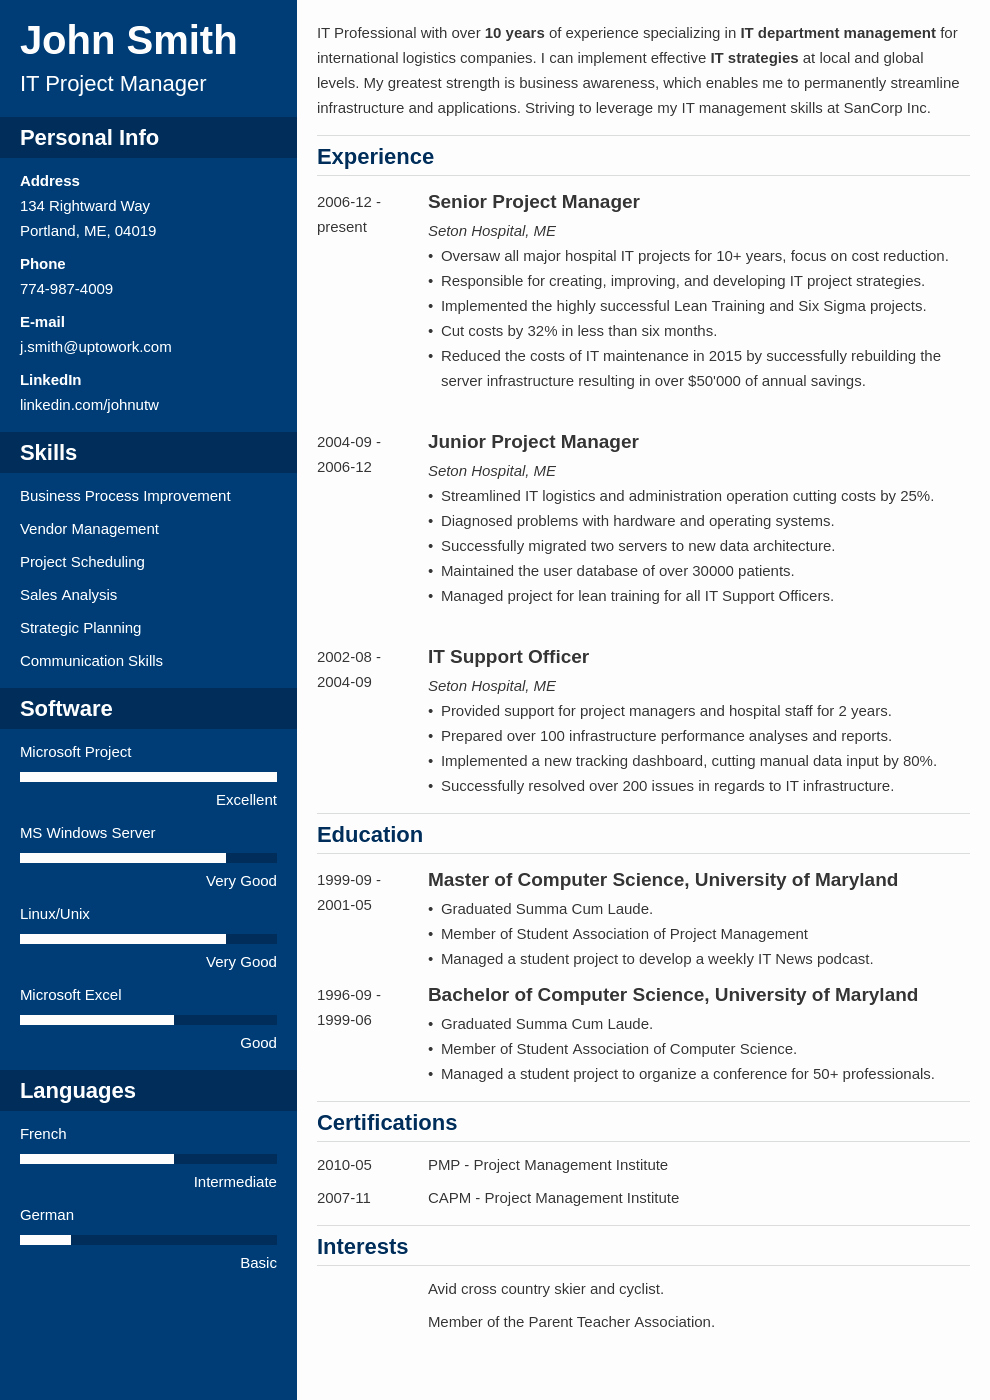 Professional Resume format Free Download Unique 20 Cv Templates Create Your Professional Cv In 5 Minutes